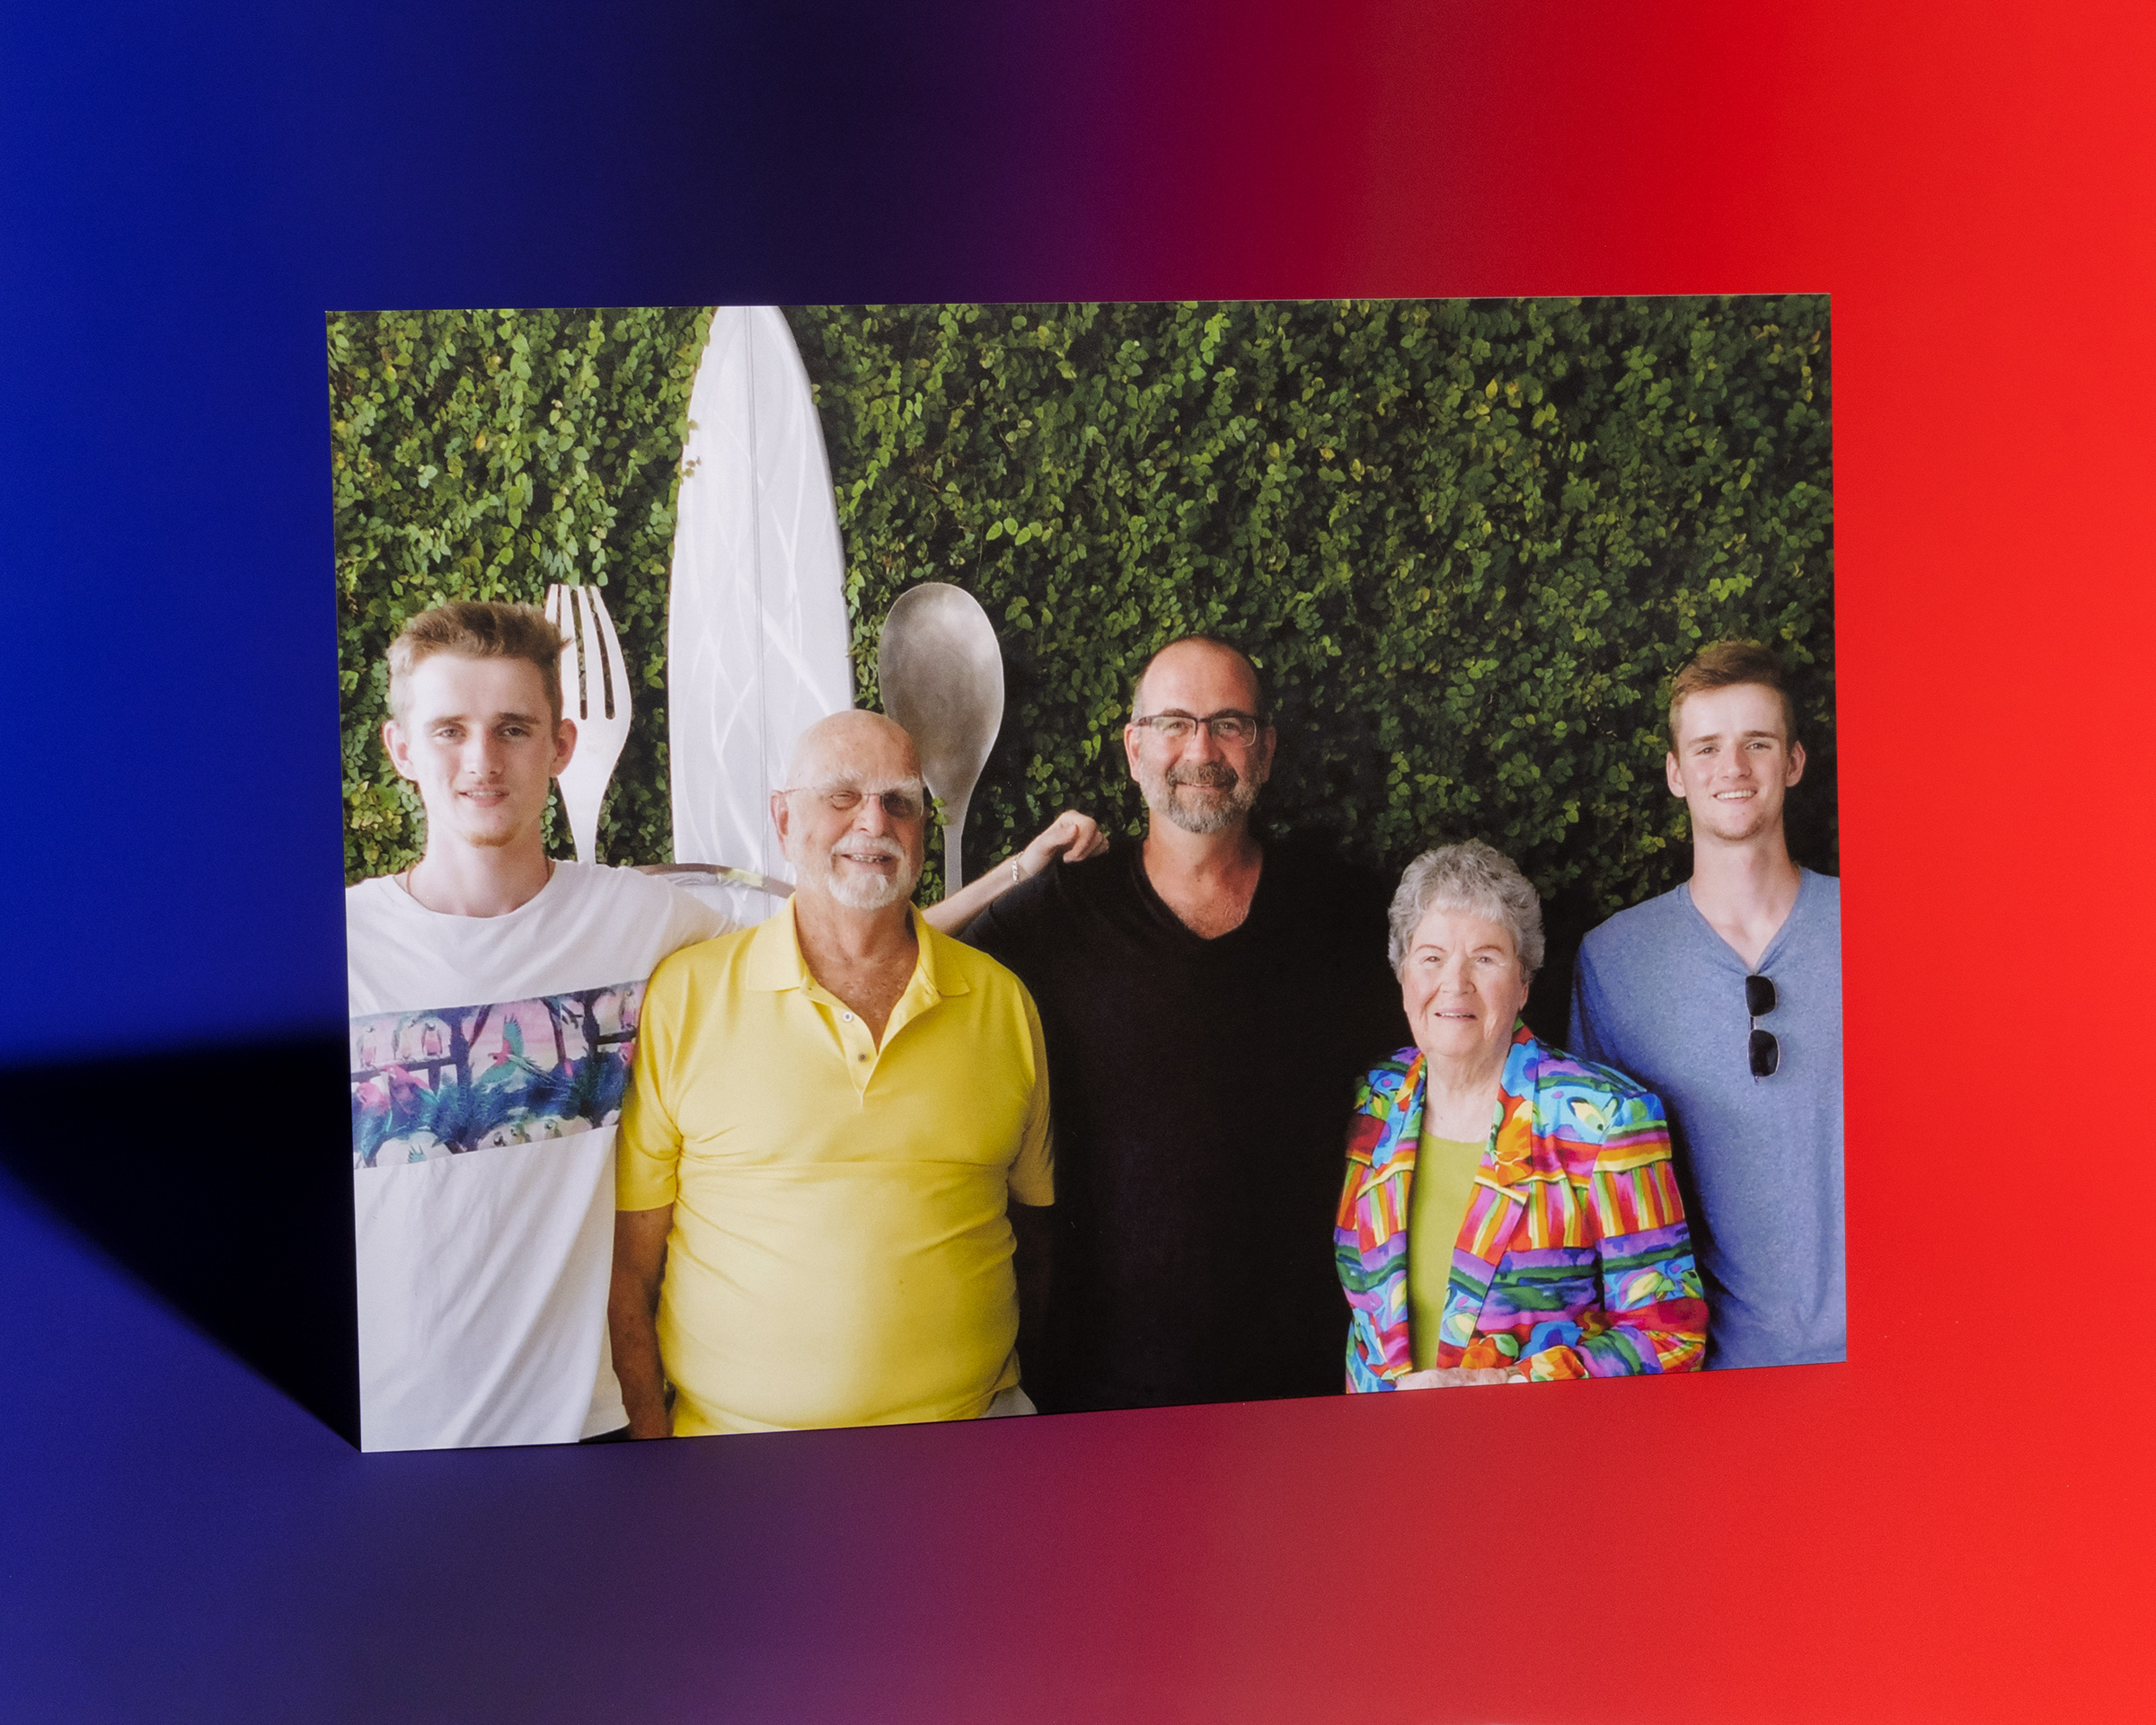 Paul Groen, center, flanked by his parents, Paul and Maxine, and his twin sons in Florida in 2019